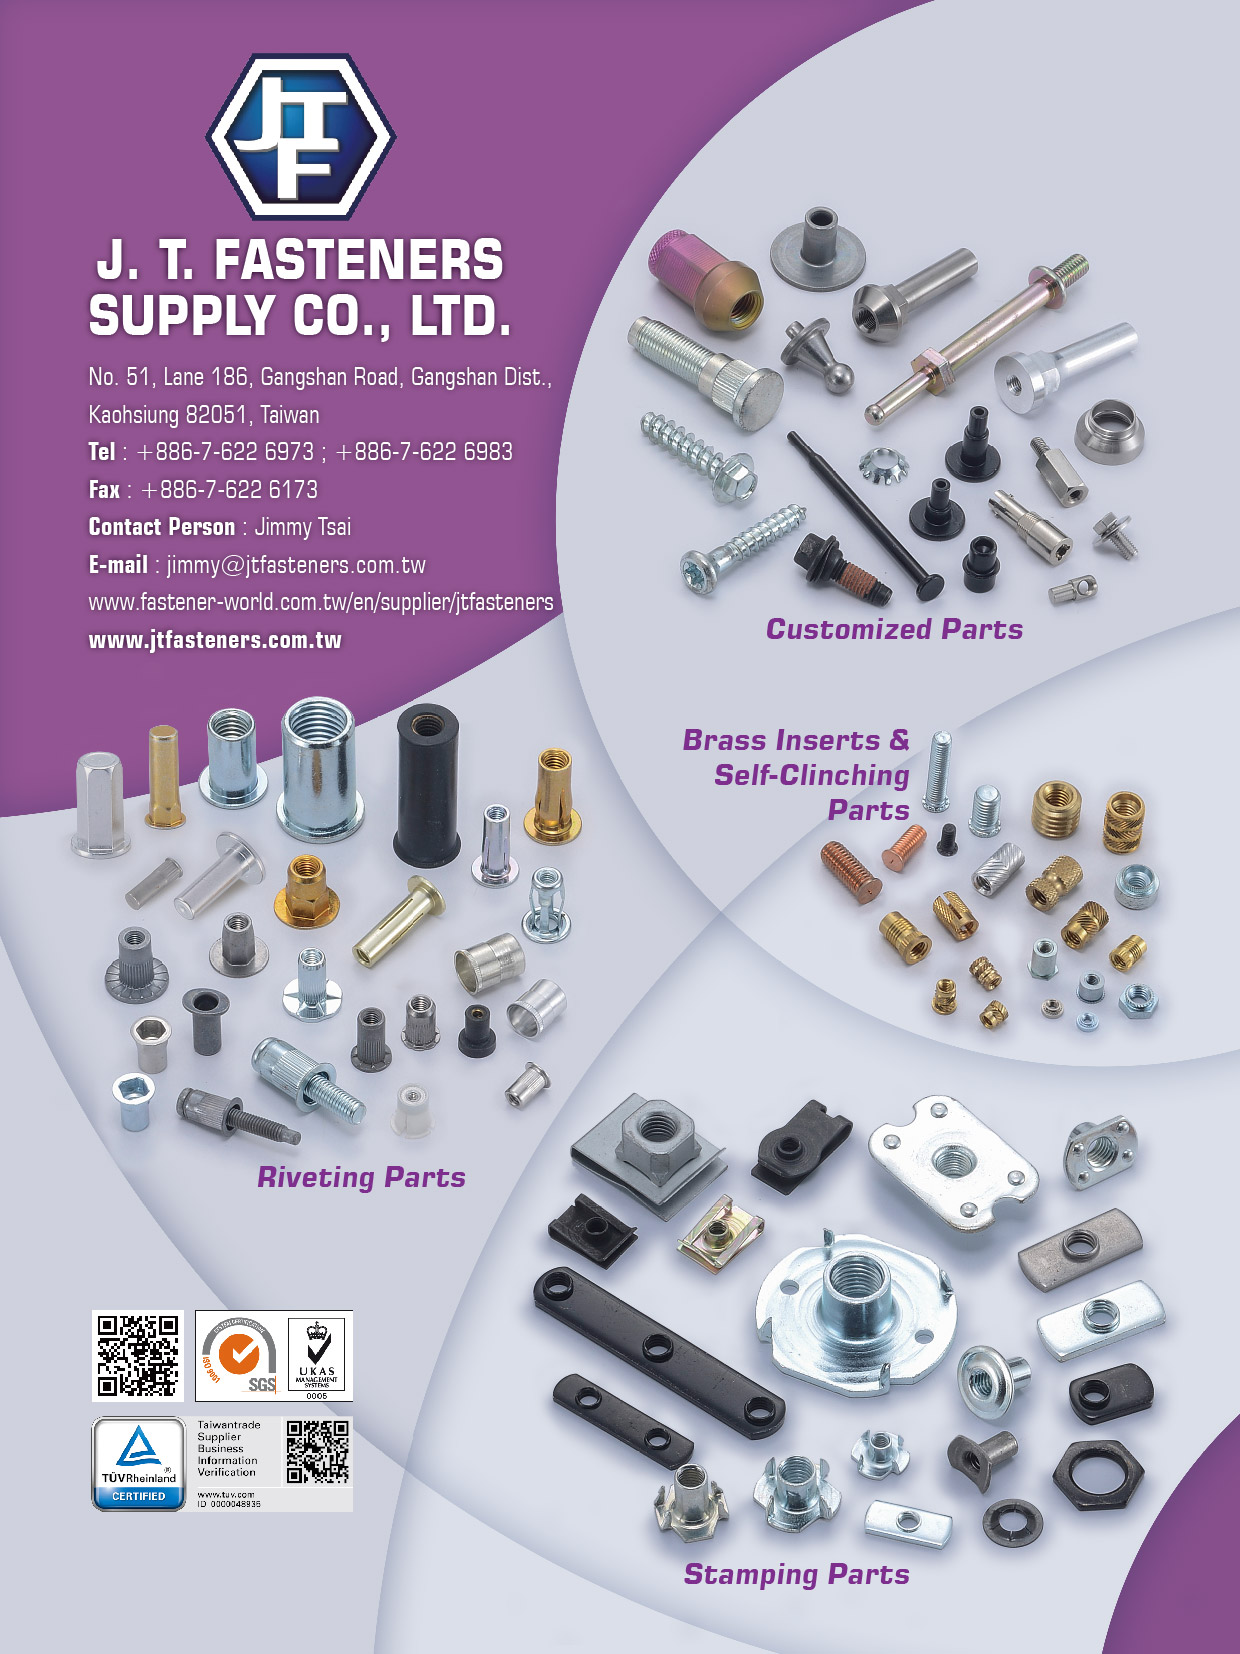 J. T. FASTENERS SUPPLY CO., LTD.  Online Catalogues